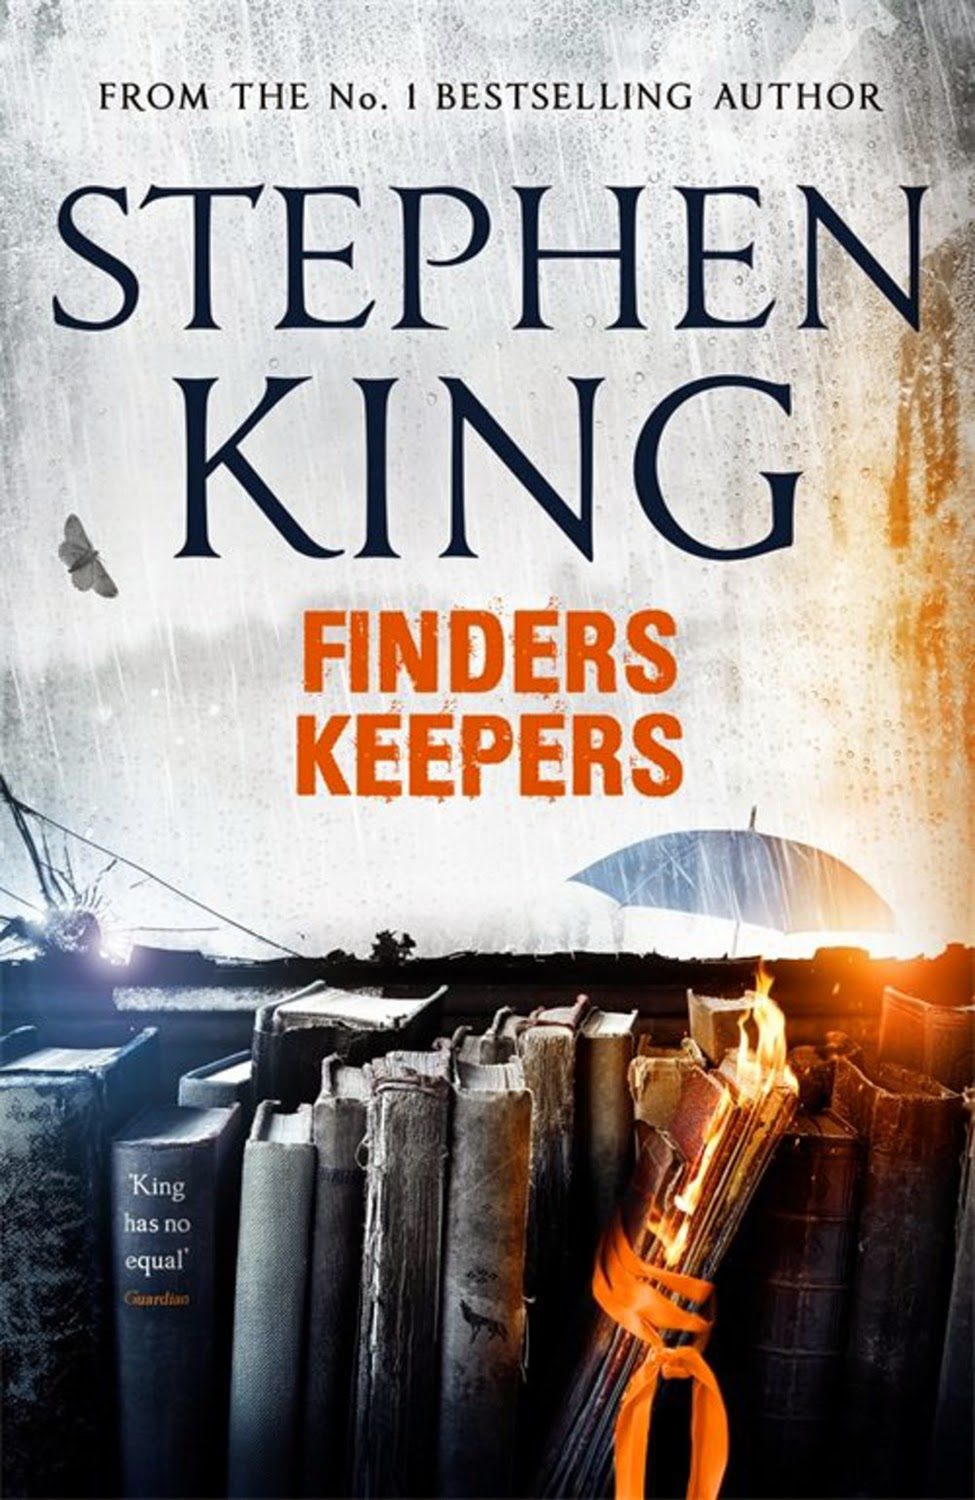 Finders Keepers by Stephen King UK edition